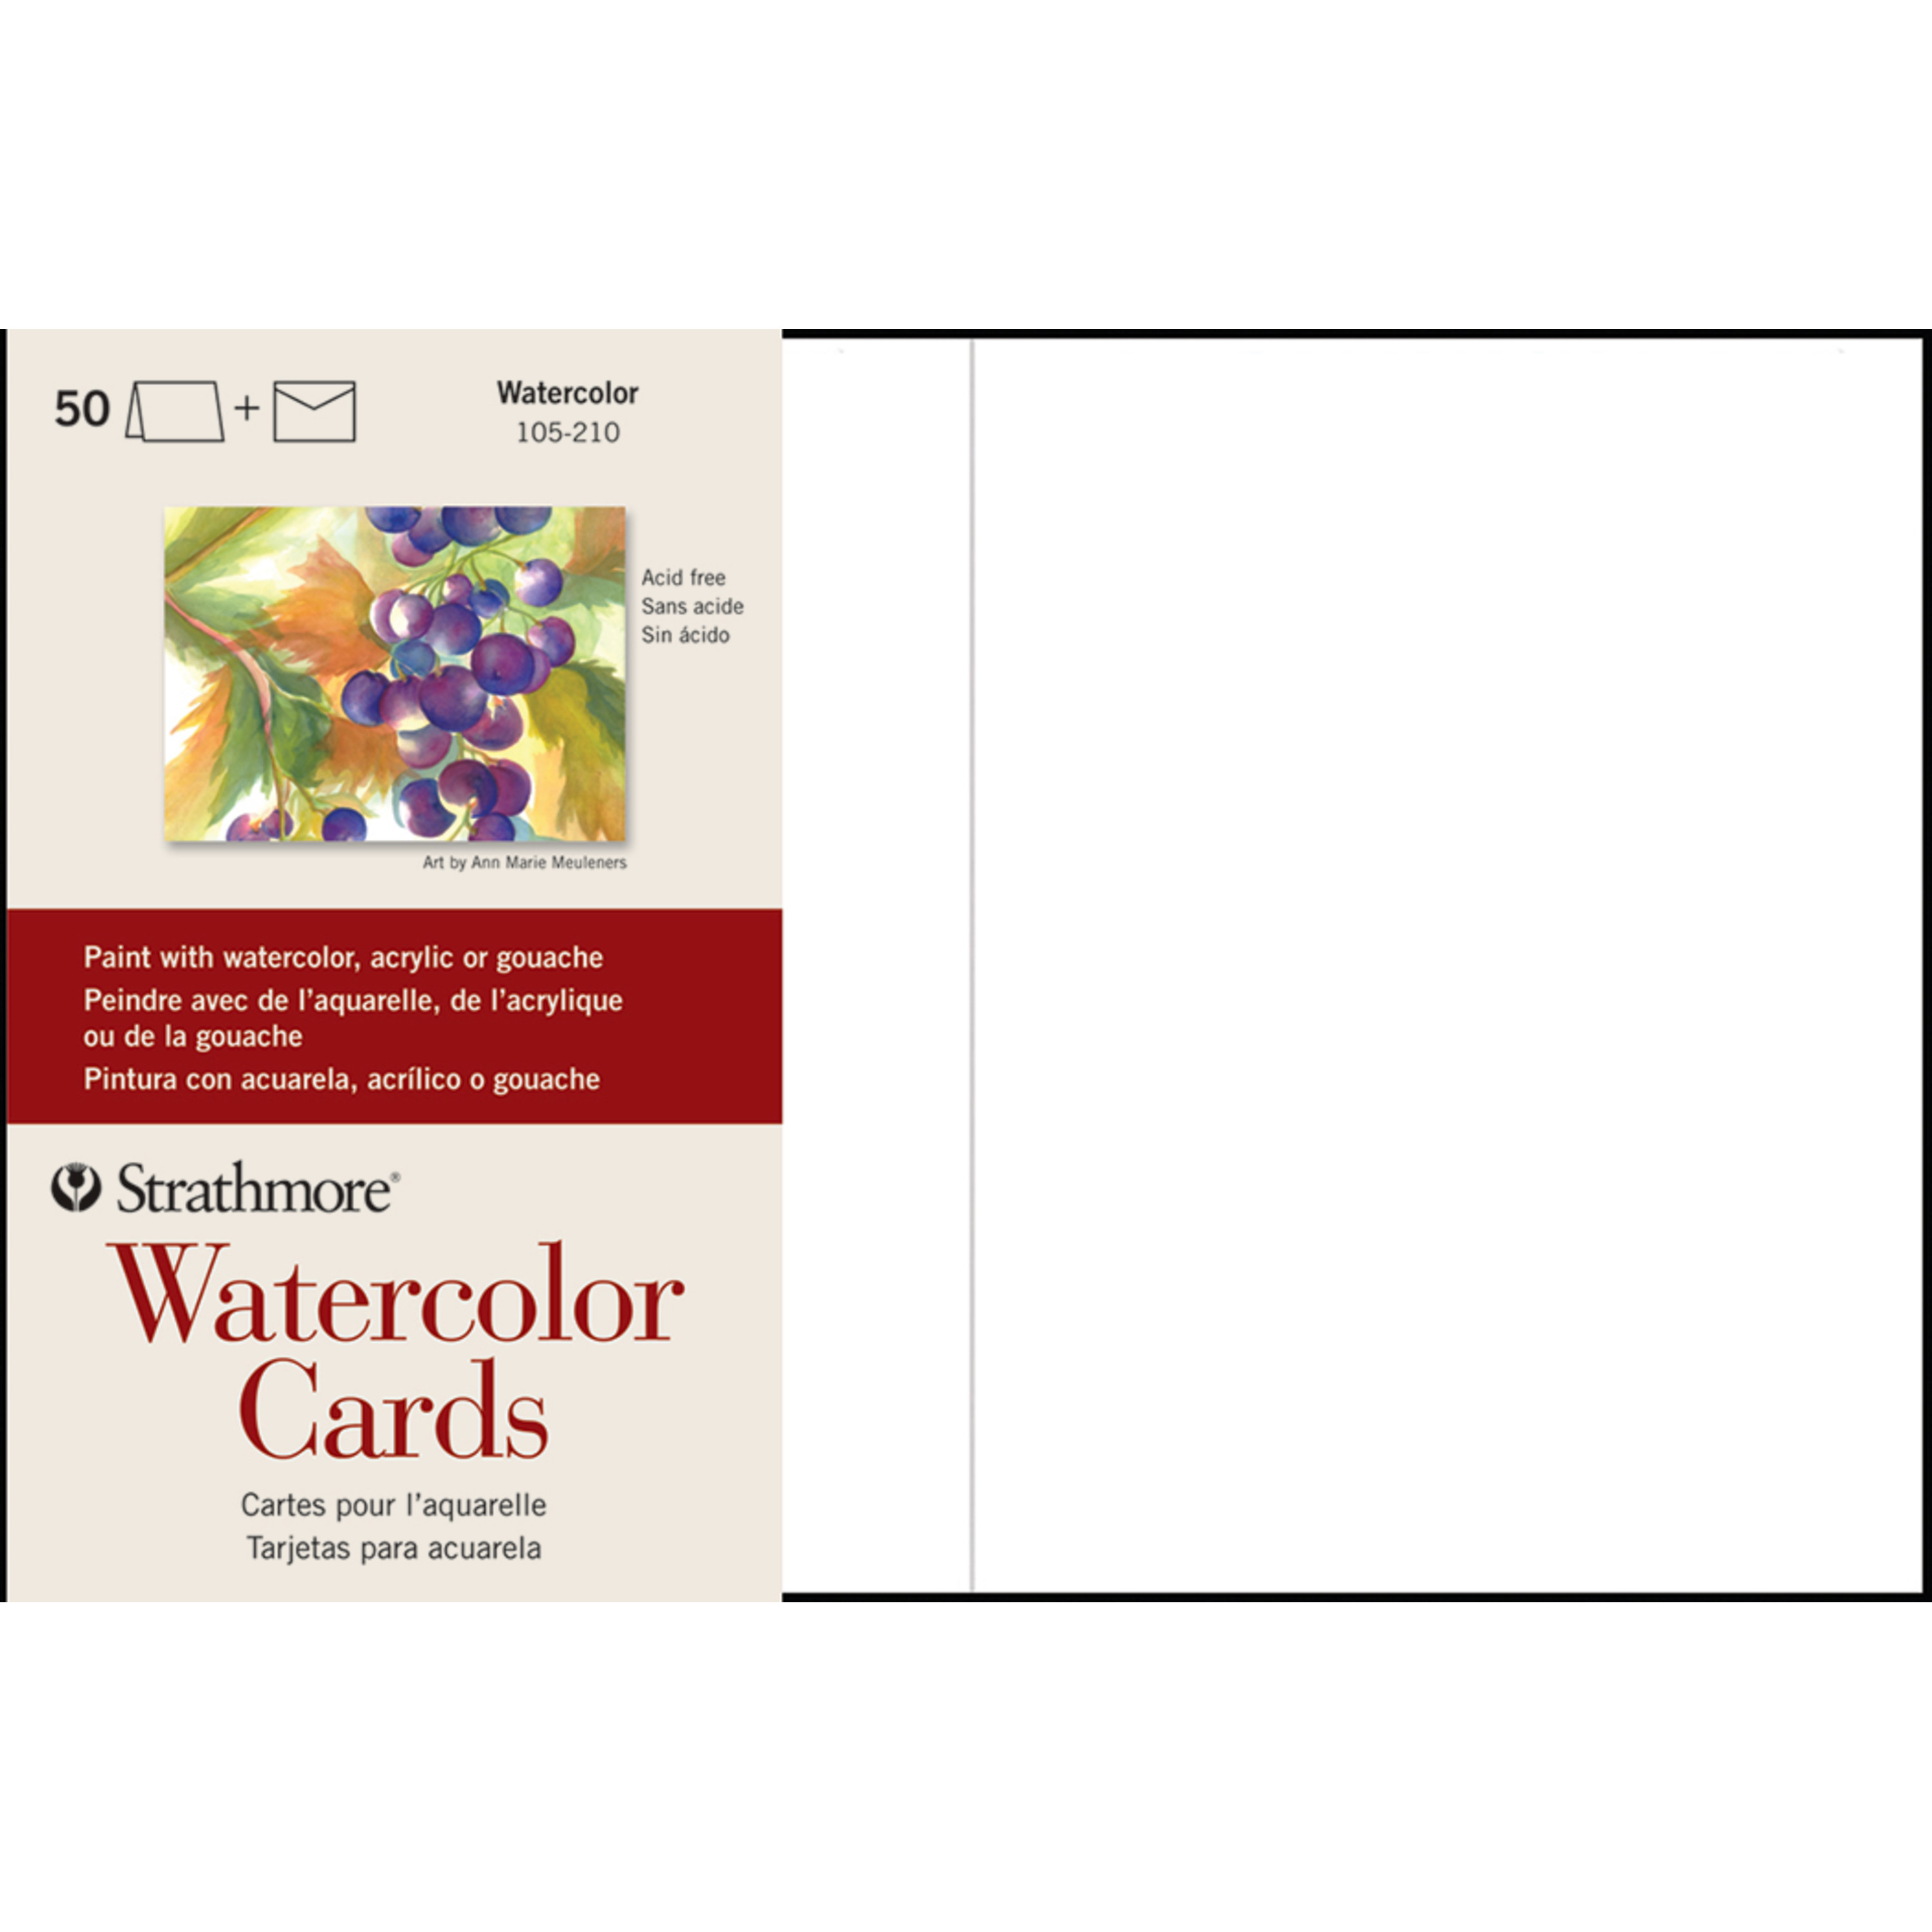 Strathmore Watercolor Cards, 5in x 7in, 50/Pkg.